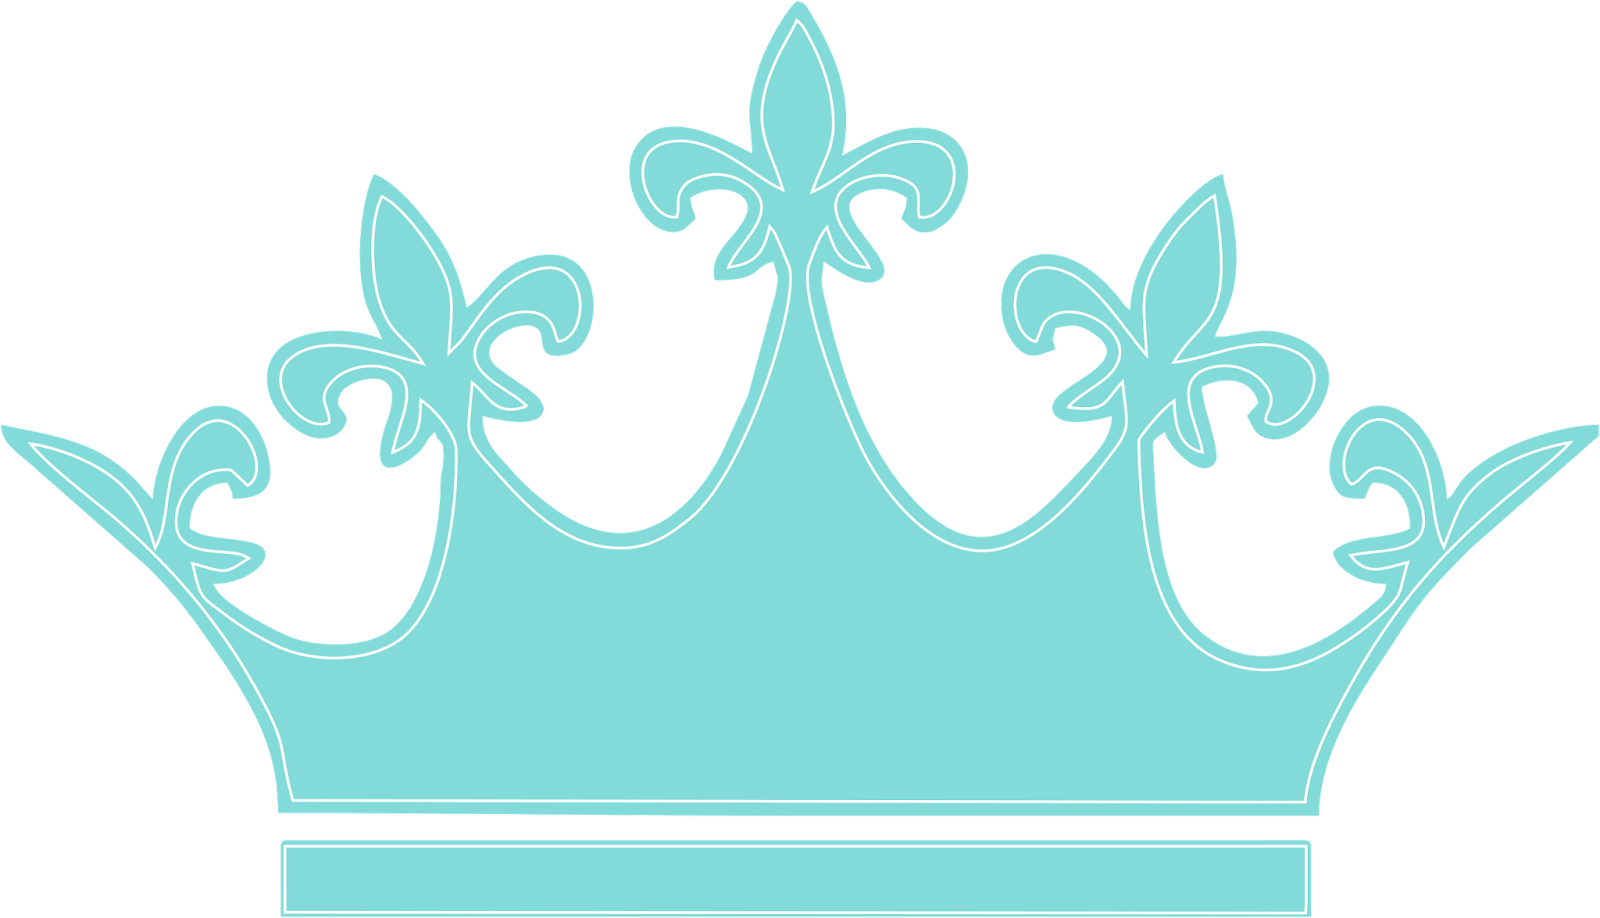 HD Transparent Background Queen's Crown Png Transparent PNG Image.